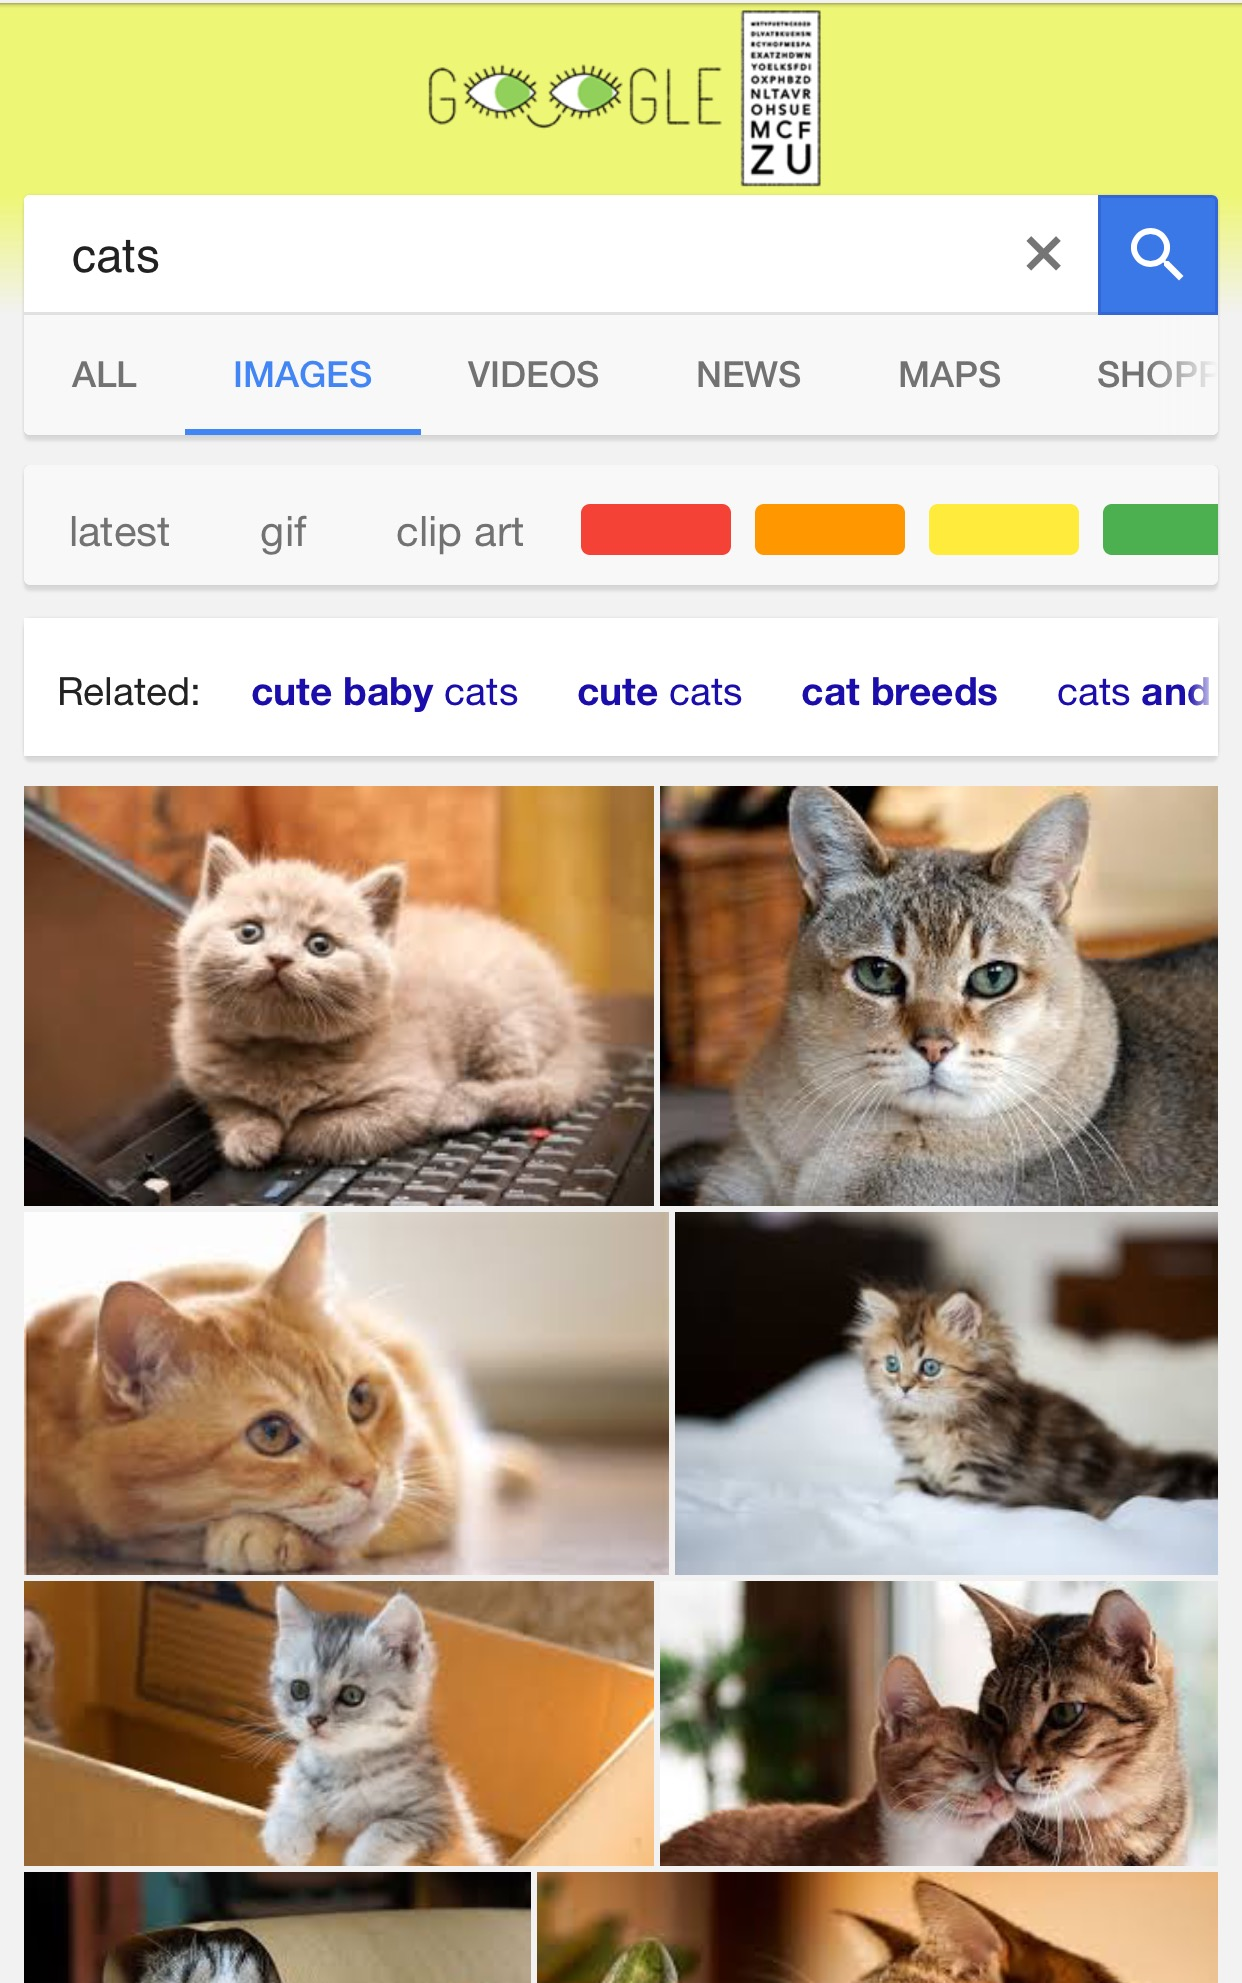 New Filters Added to Google Image Search